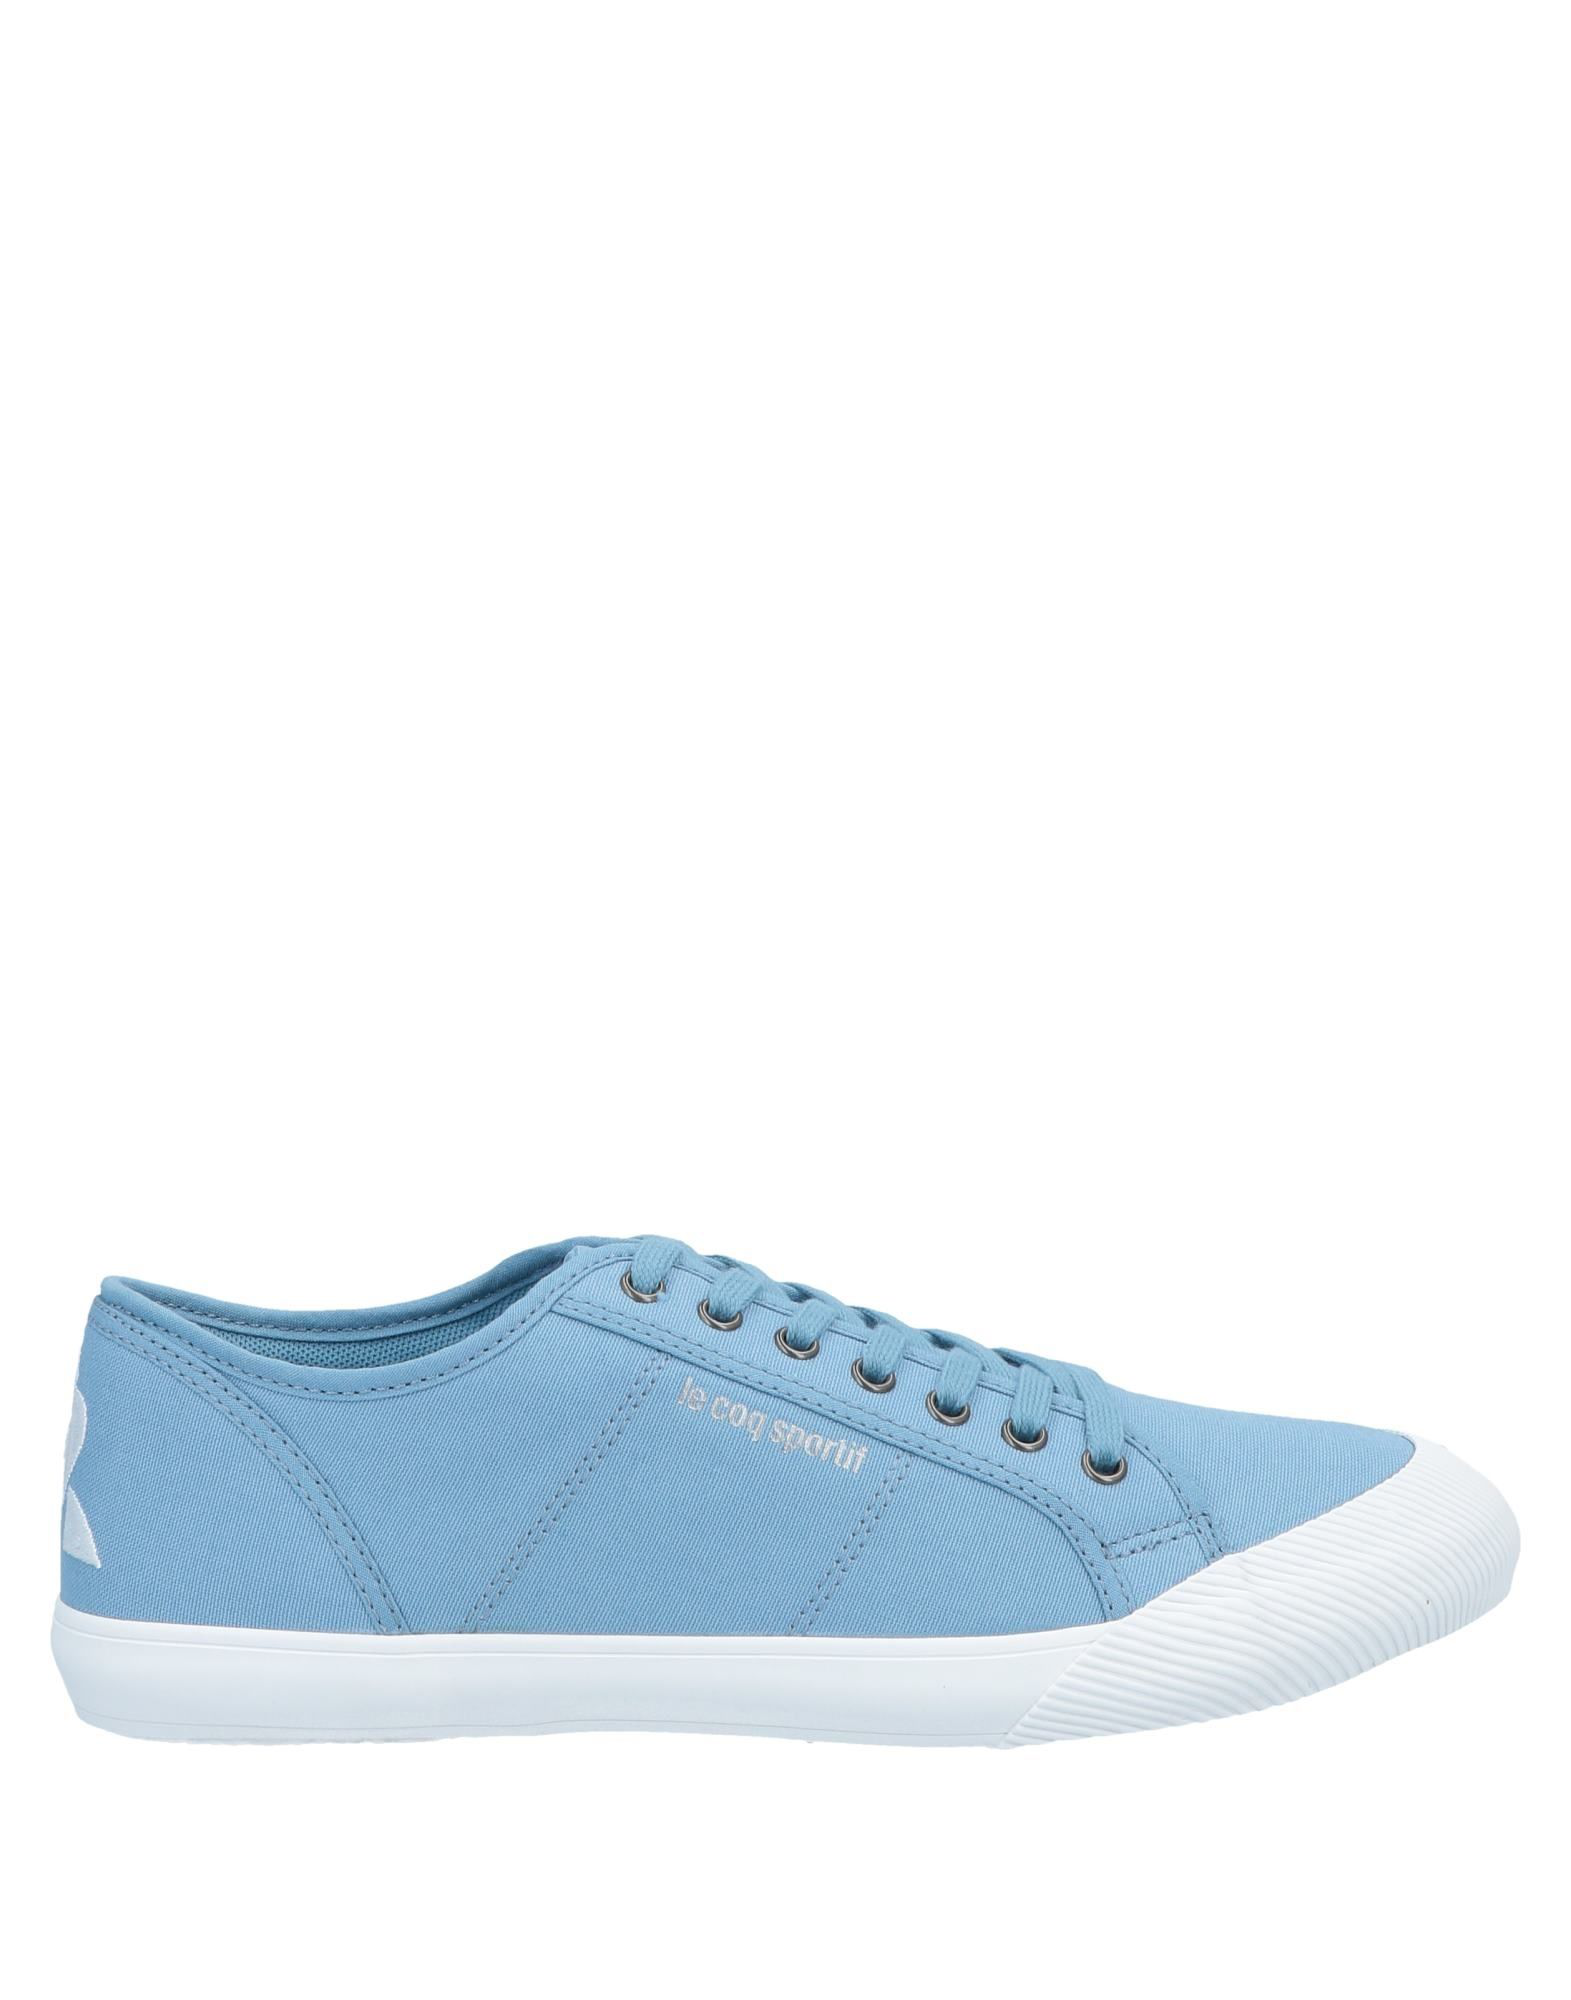 finest selection e38a4 5ab58 Le Coq Sportif Sneakers In Sky Blue